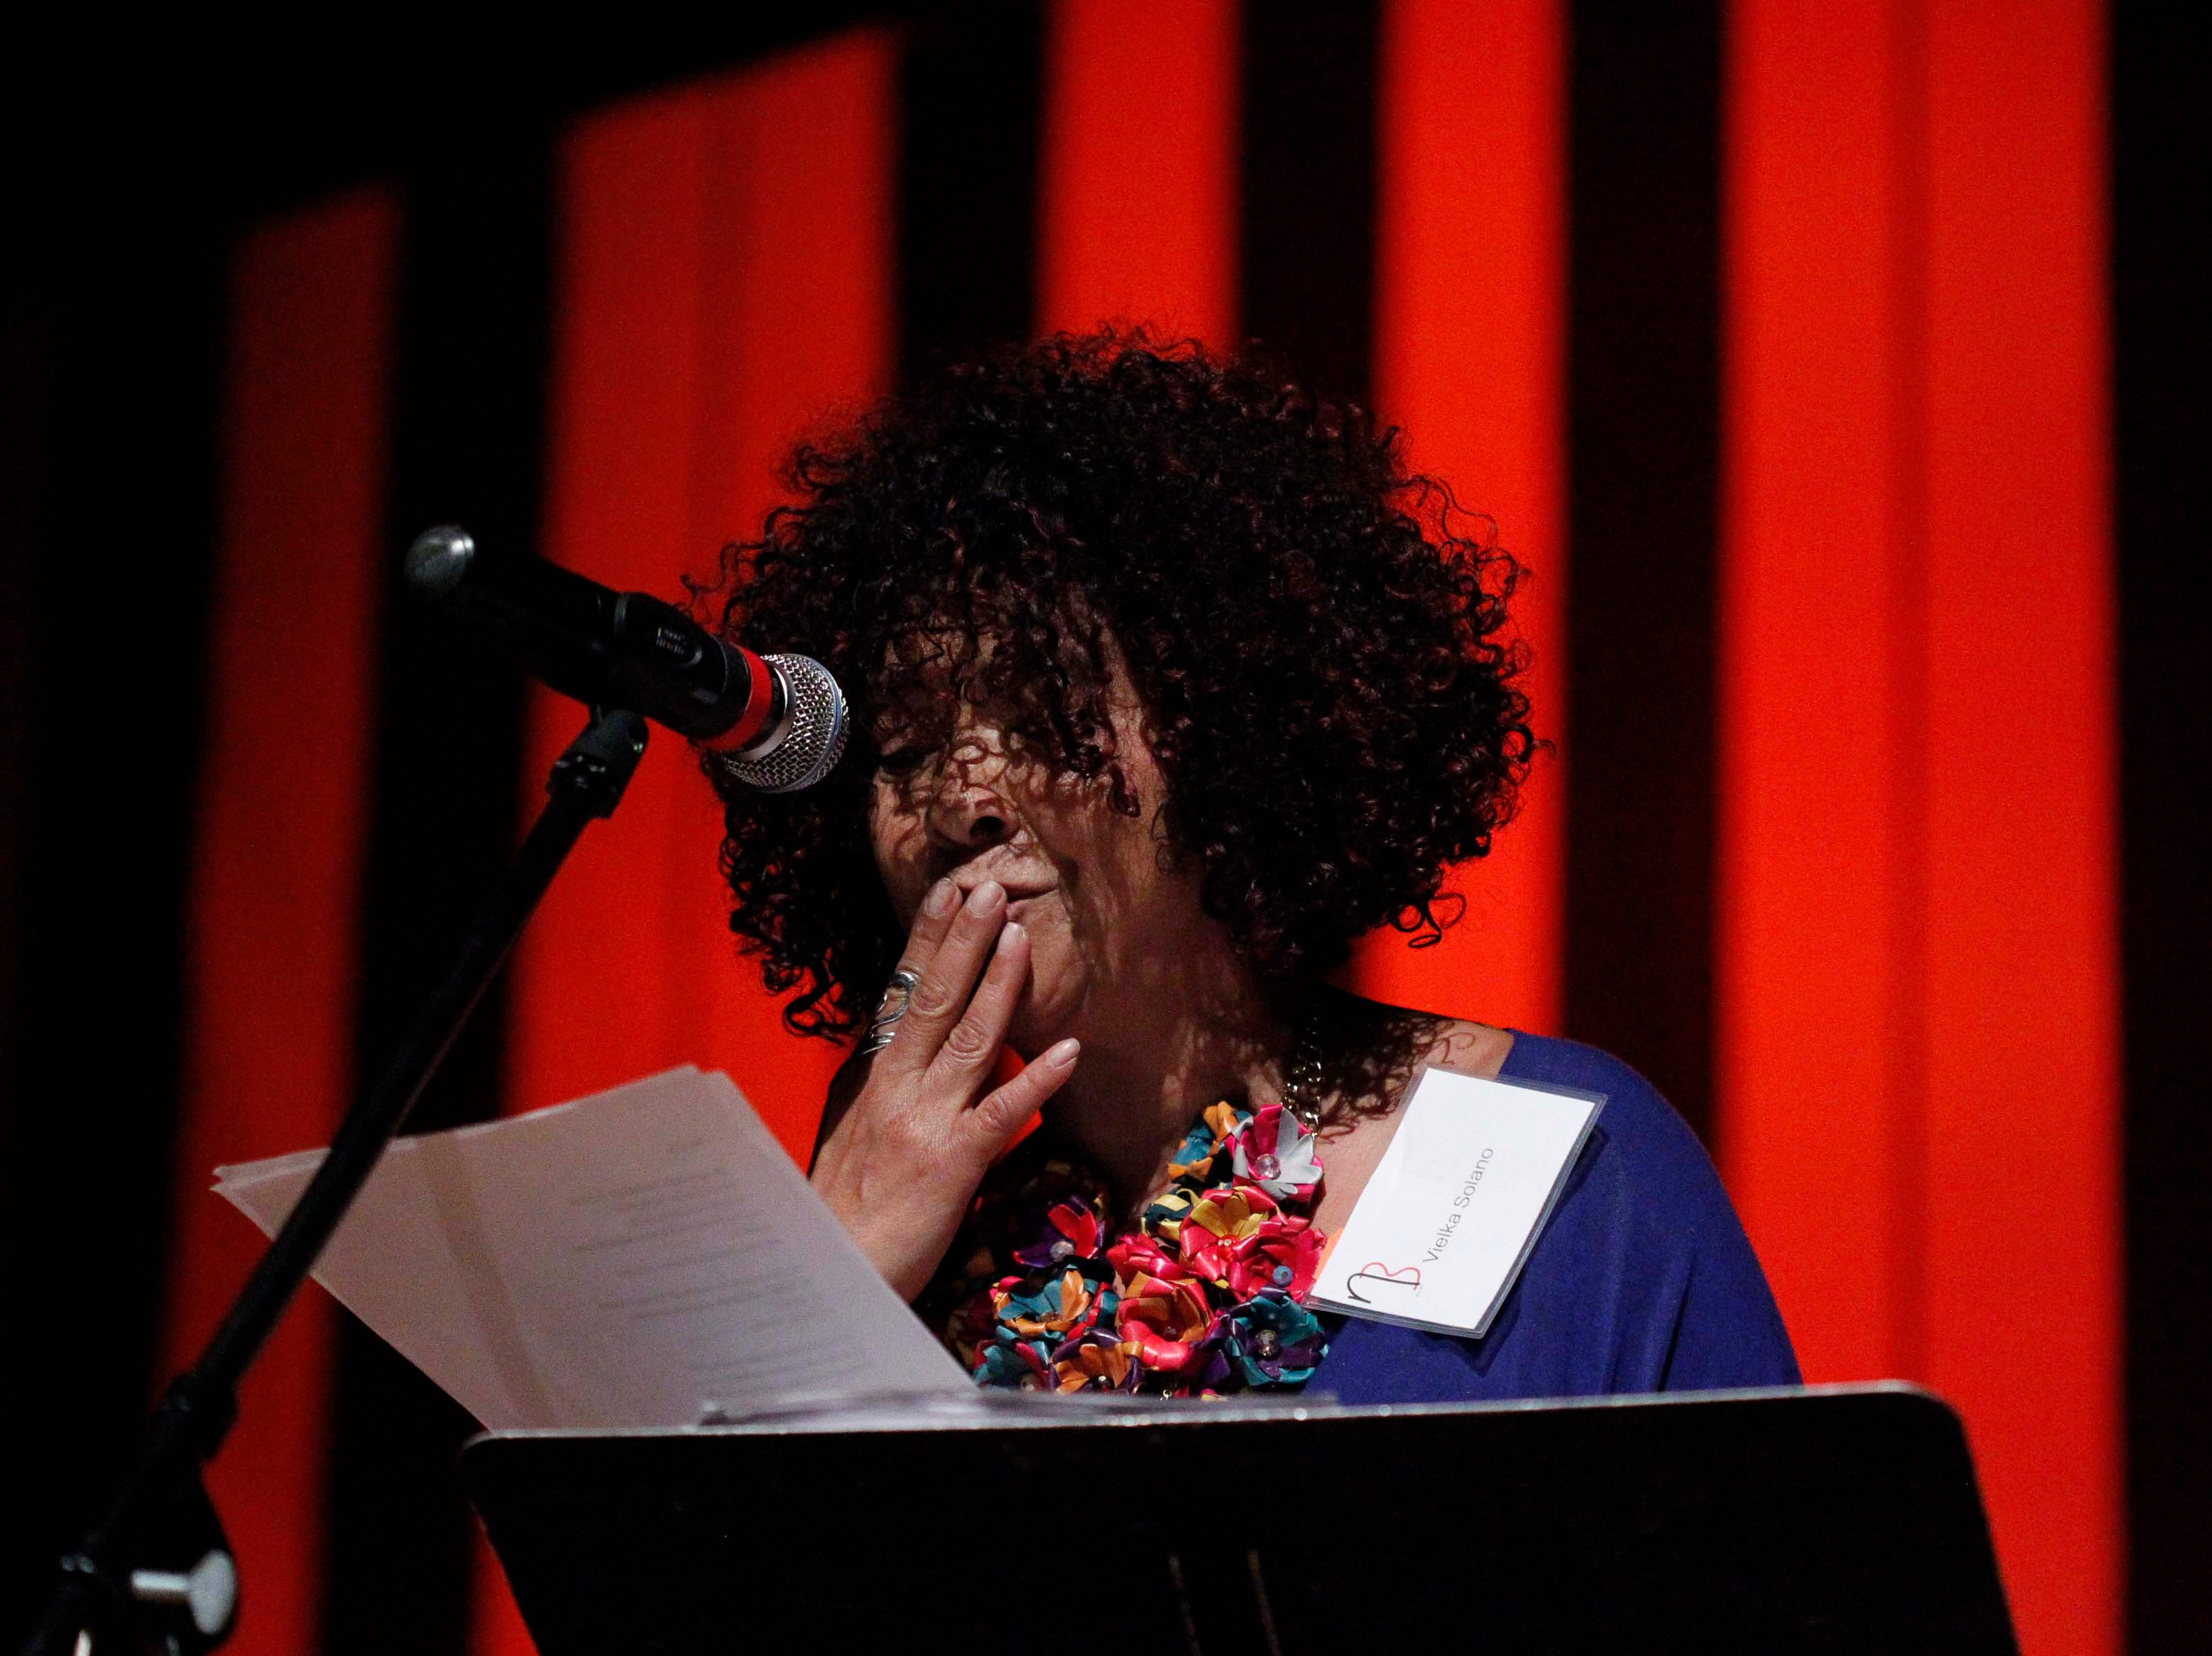 Author Vielka Solano performs a dramatic reading during the12th annual Noche Bohemia at Sherwood Hall on Saturday, April 27, 2019 in Salinas, Calif.